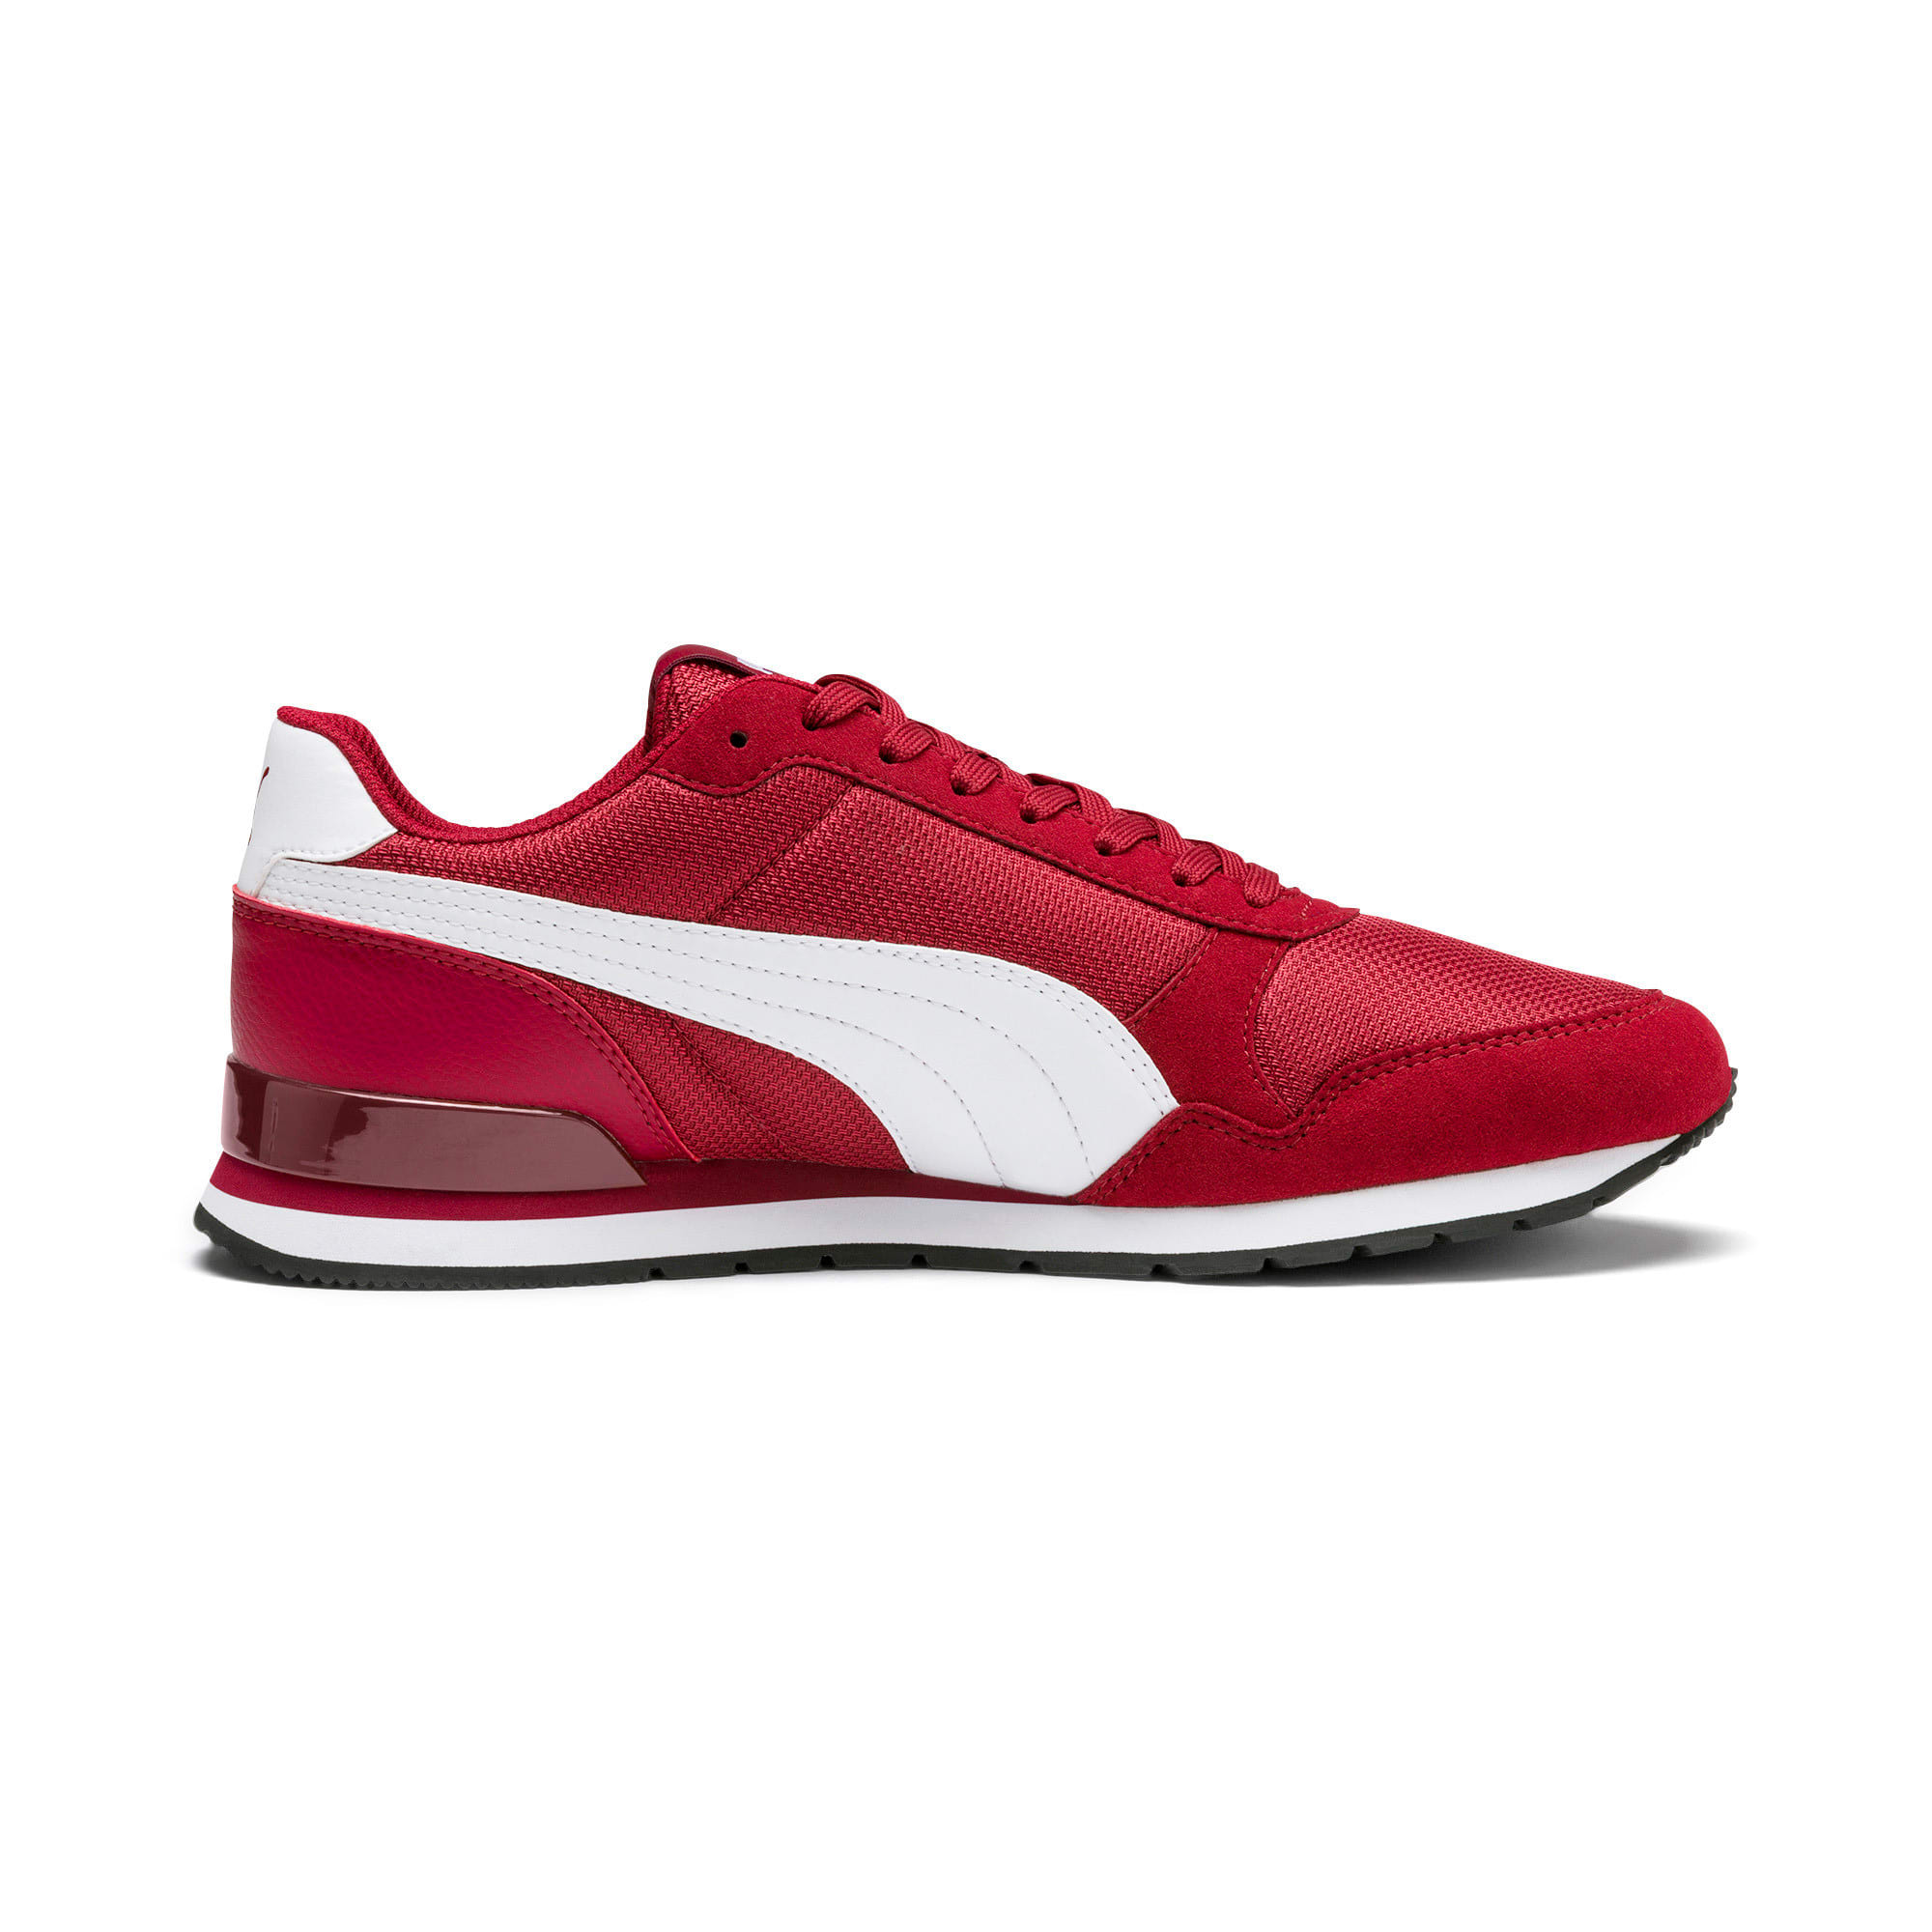 Thumbnail 6 of ST Runner v2 Mesh Sneakers, Rhubarb-Puma White, medium